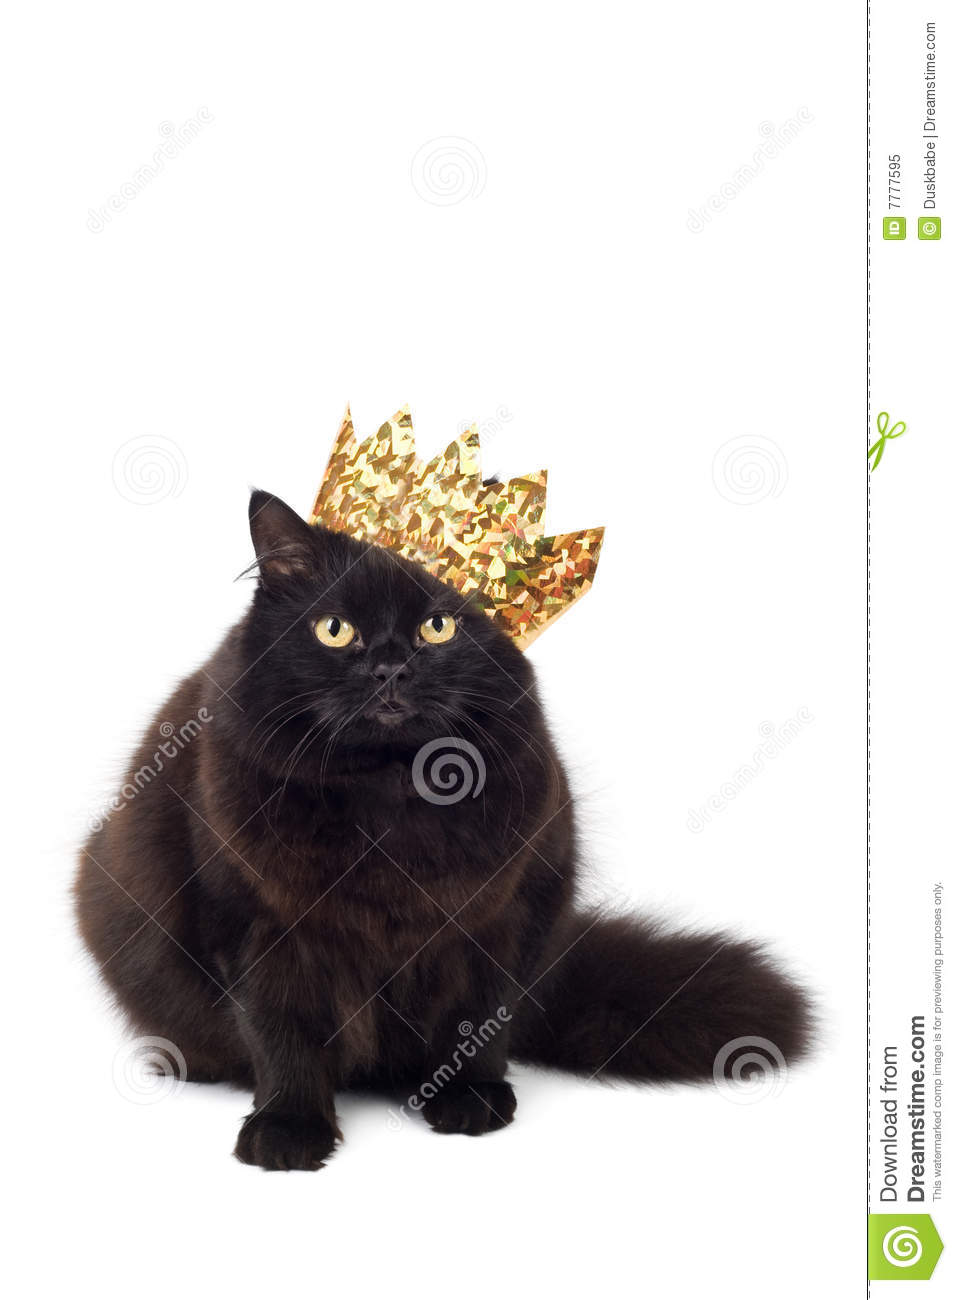 black cat wearing golden crown isolated royalty free stock free crown clipart without background free crown clipart for cricut